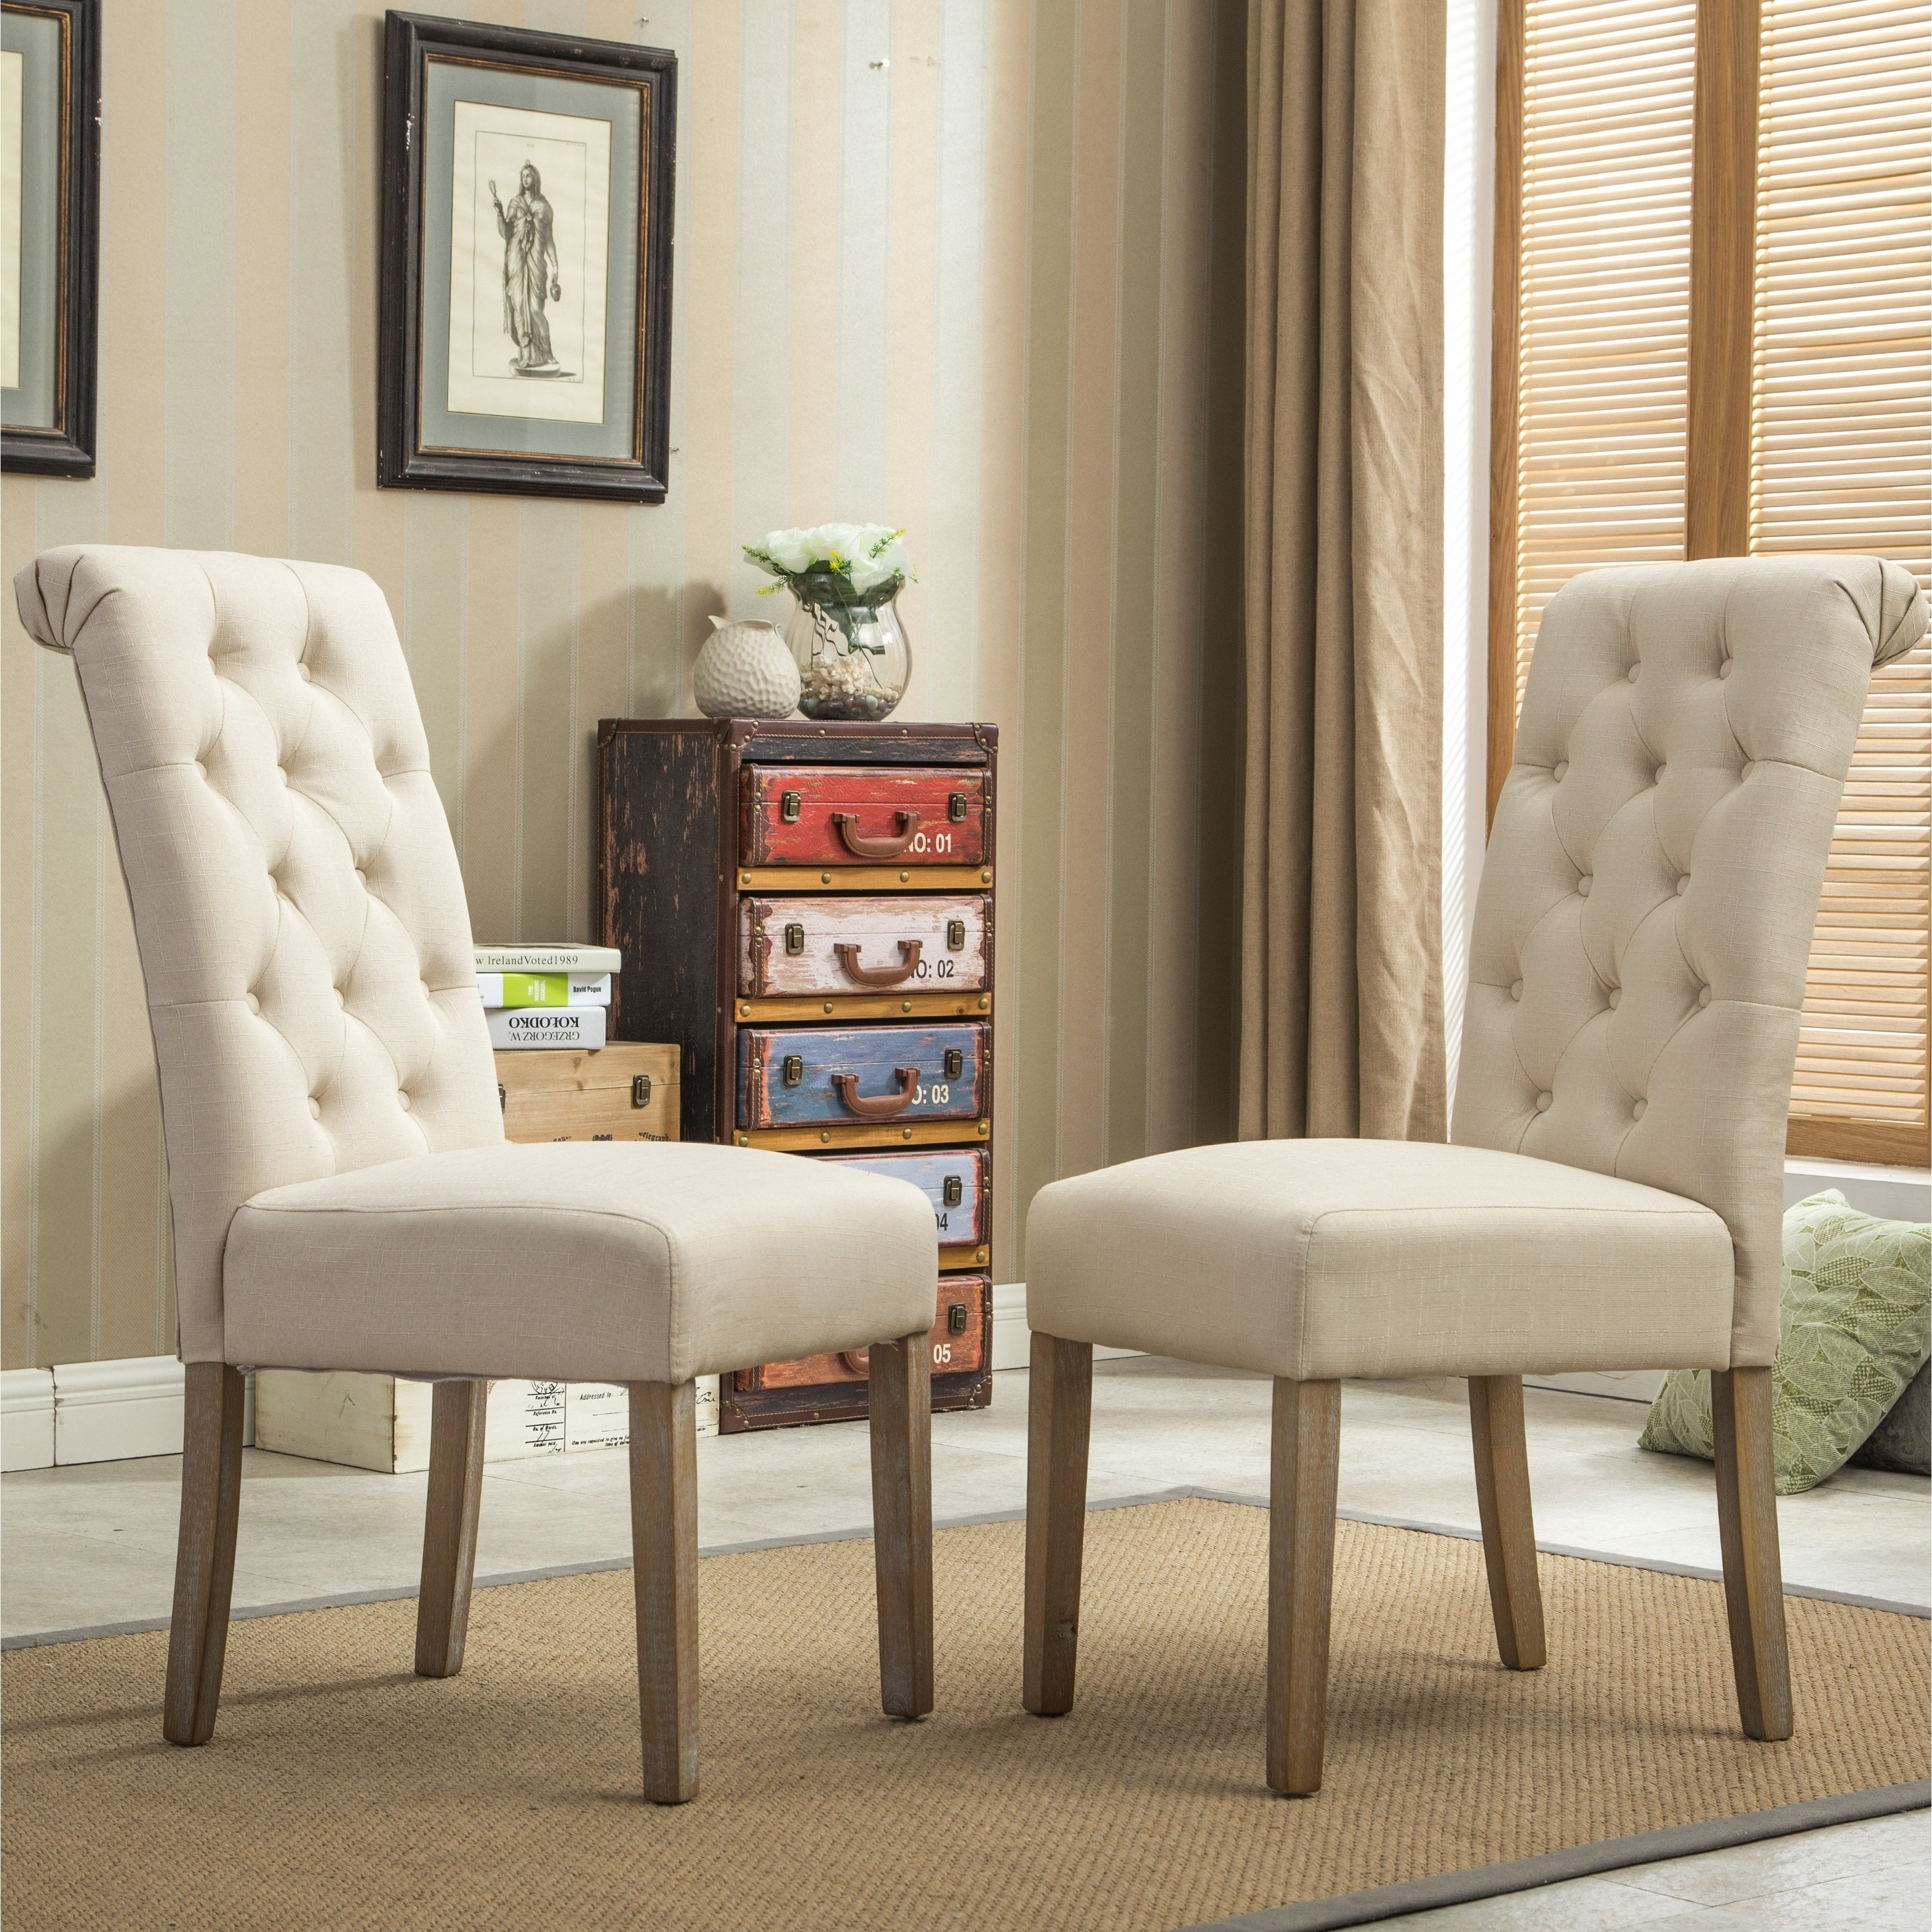 Copper Dining Chairs Bogart Tufted Dining Chair Set Of 2